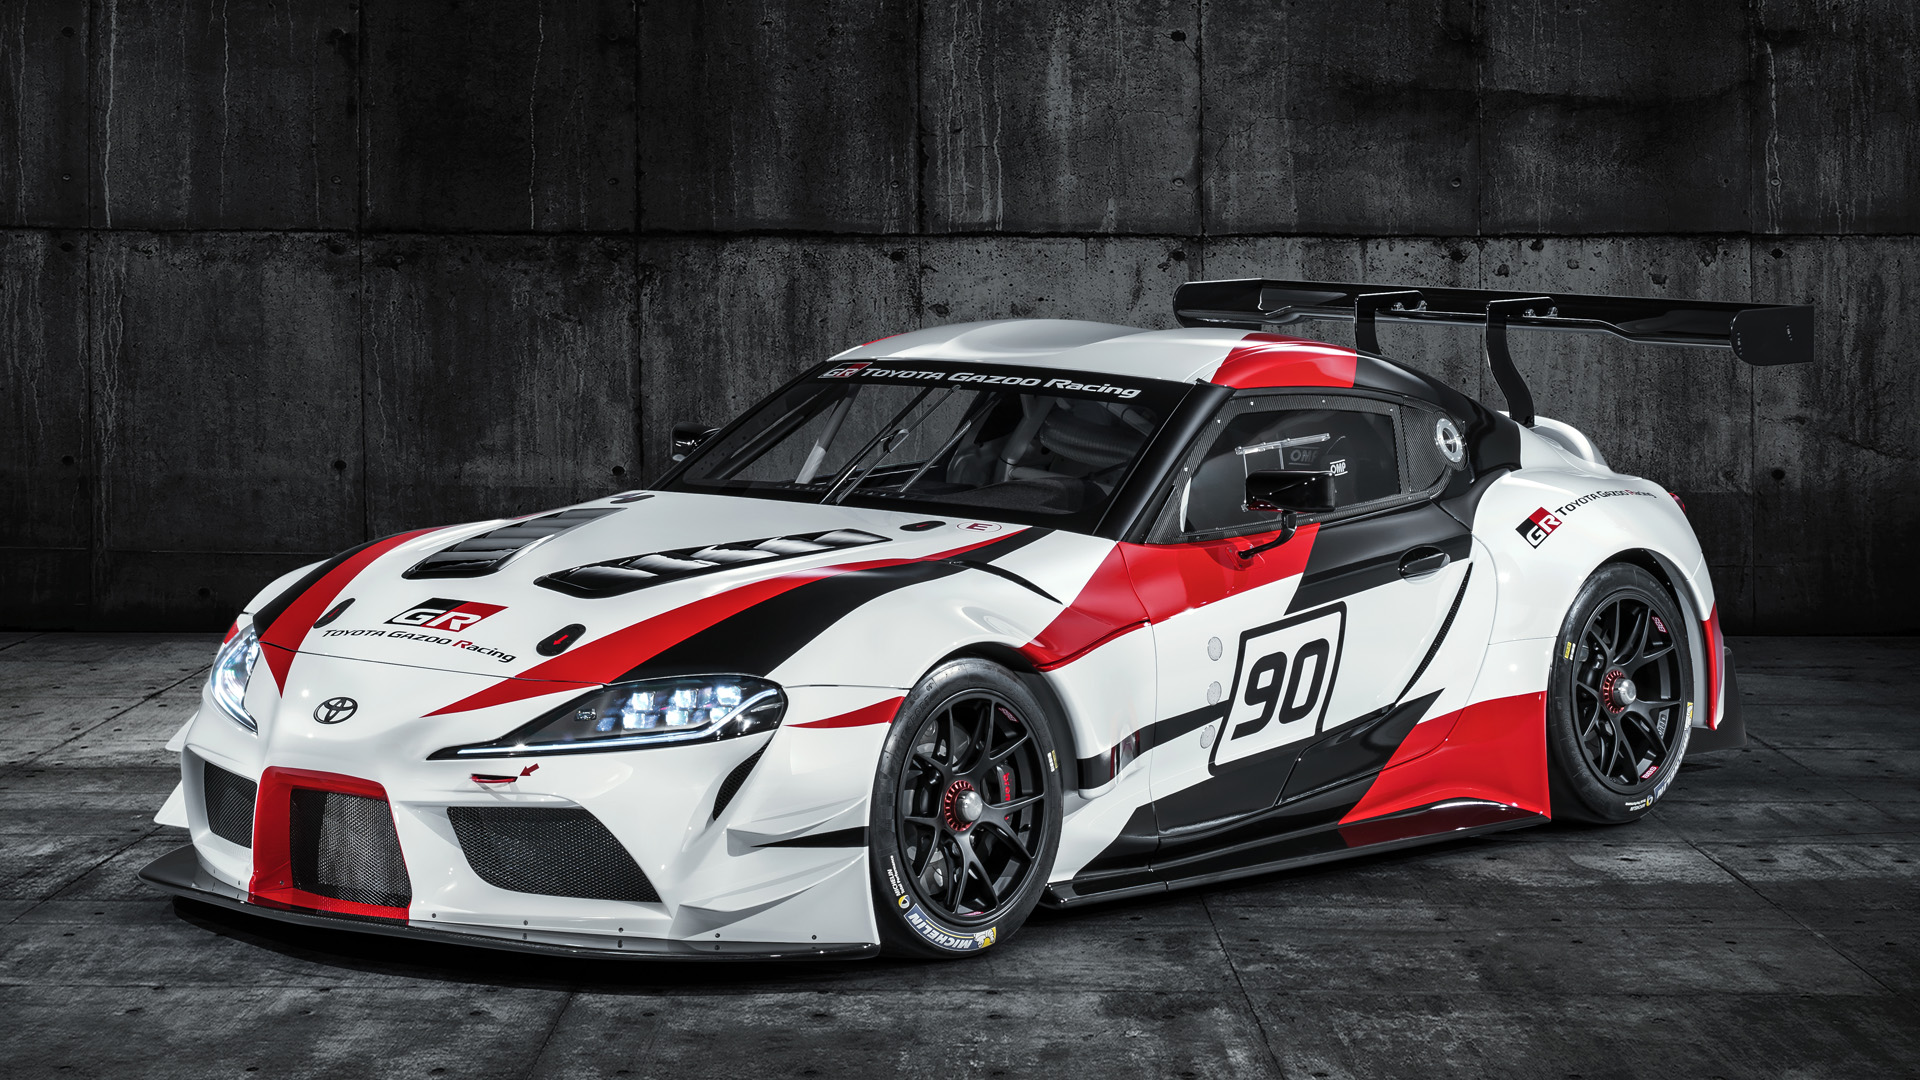 Toyota Gr Supra Racing Concept World Premiere Coming Soon To Gran